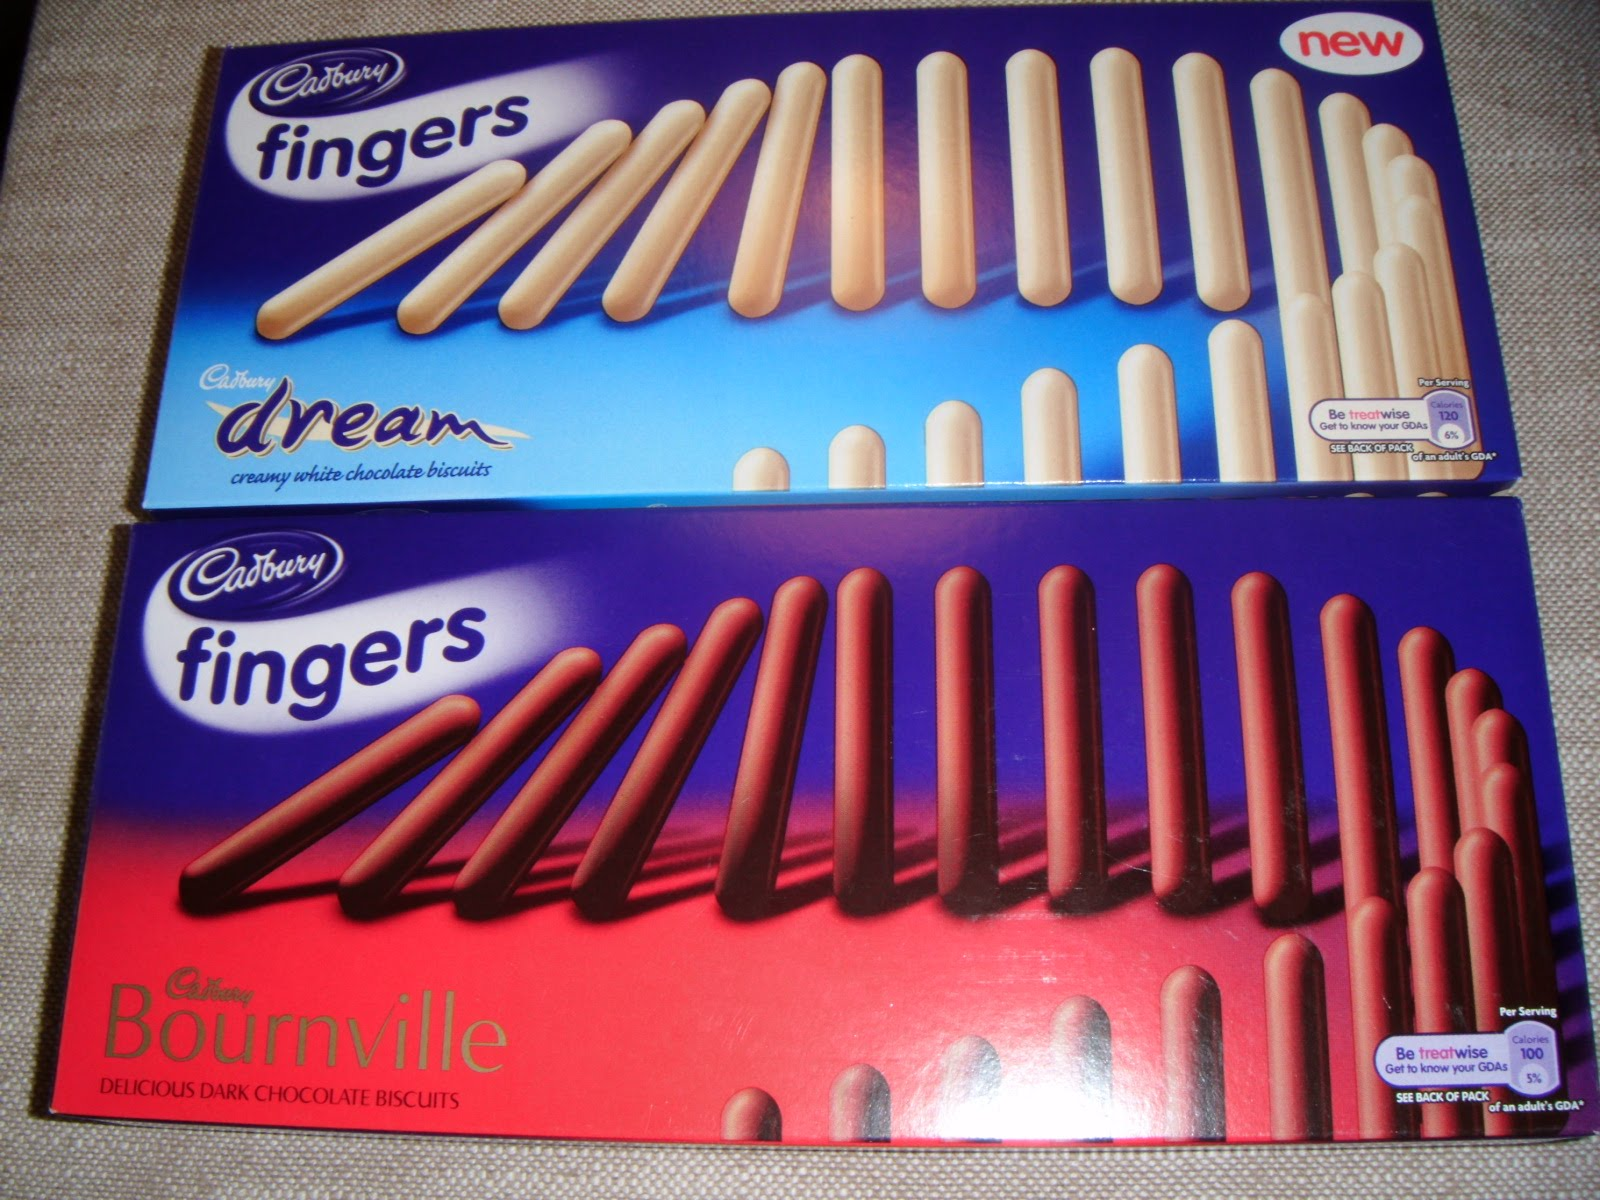 White apron sainsburys - These Two Boxes Of Cadbury S Fingers Caught My Eye In The Supermarket Especially That Magic Word On The Box Of White Chocolate Fingers New